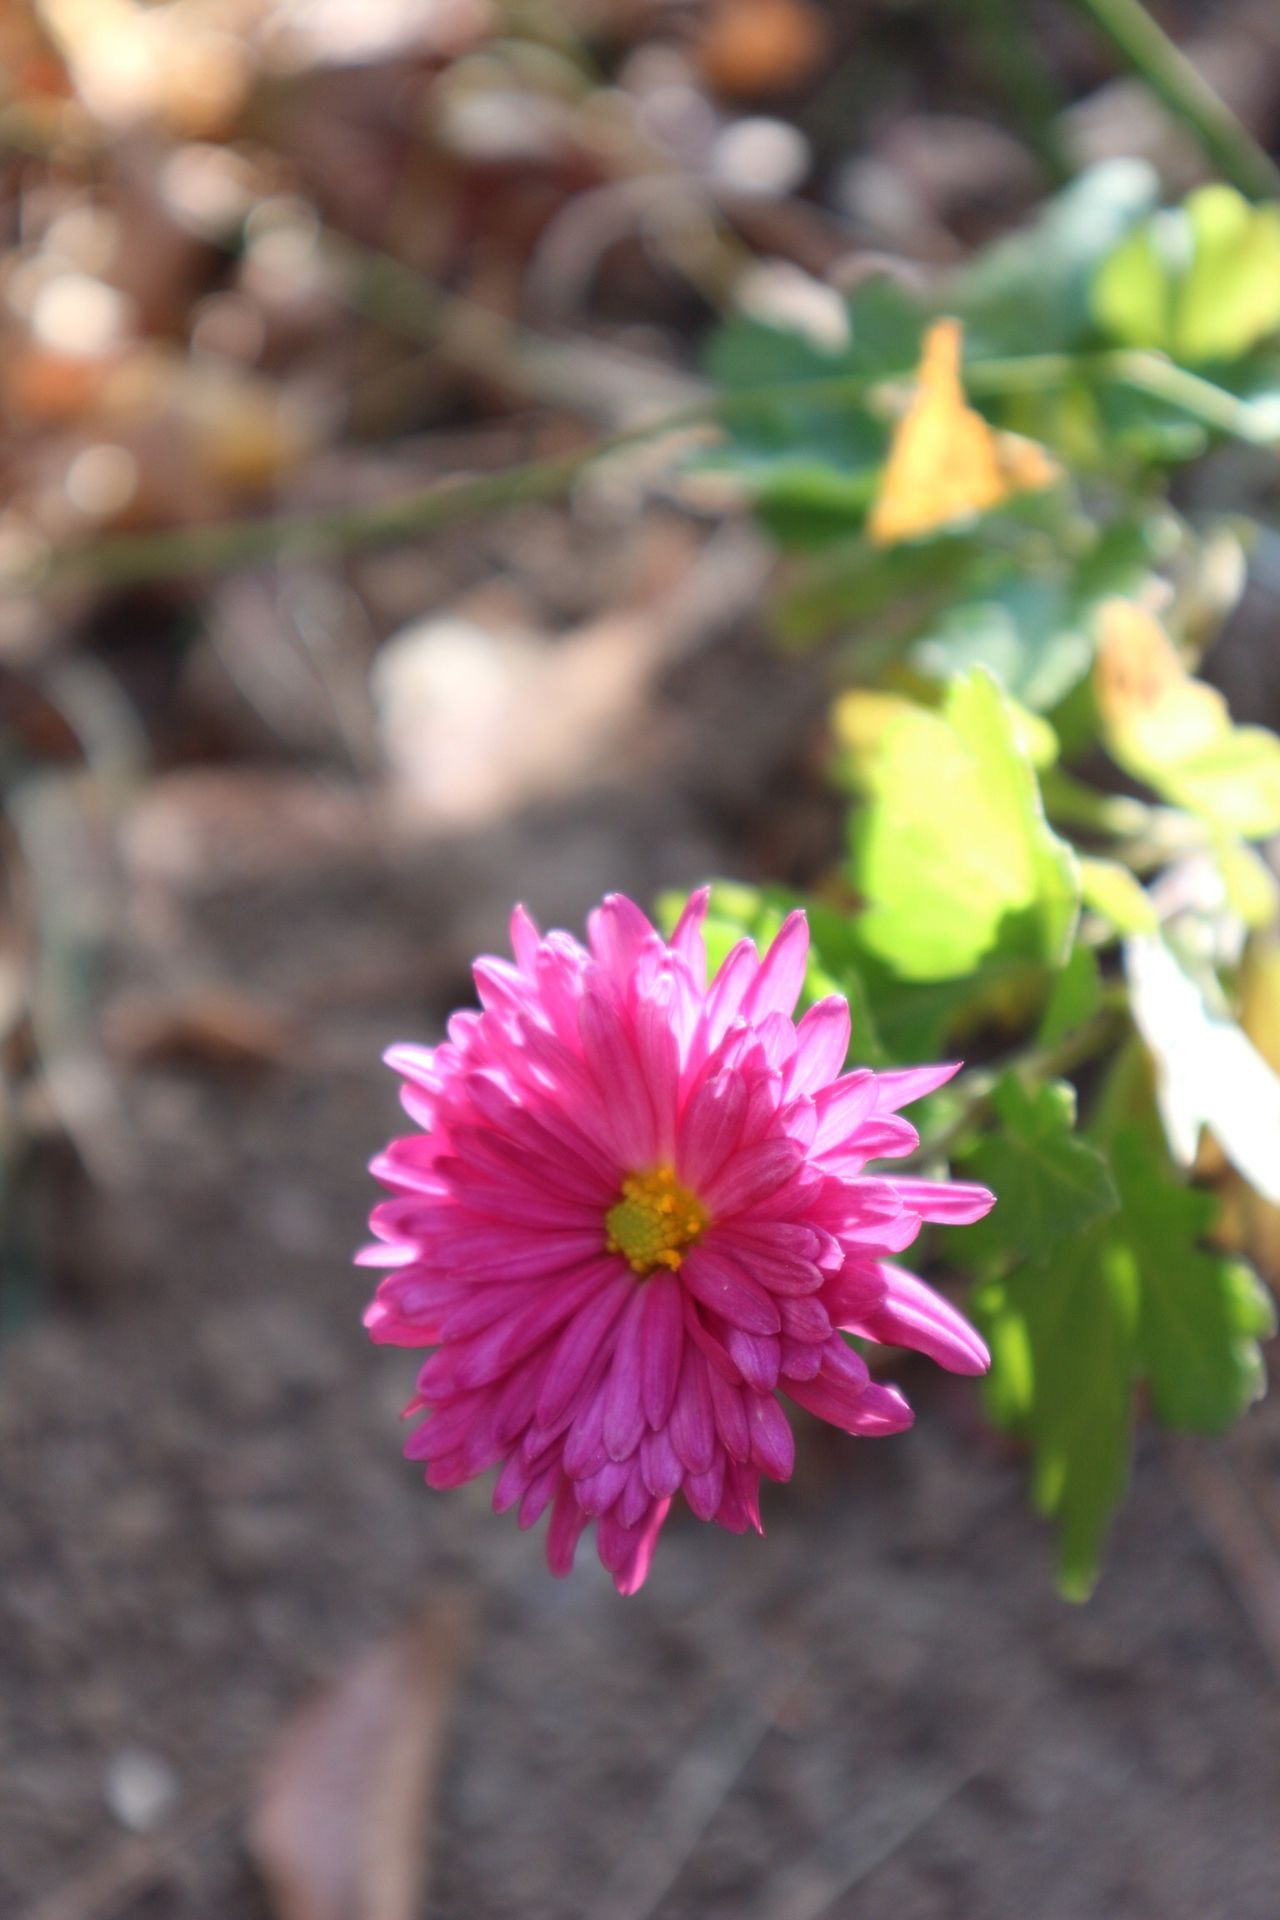 Flower Fragility Pink Color Freshness Beauty In Nature Flower Head Close-up Blooming Plant Focus On Foreground Outdoors Sundaymorning Walking Around Do-san Park Park Autumn No People Day Sunshine Nature Canon Eos 100D